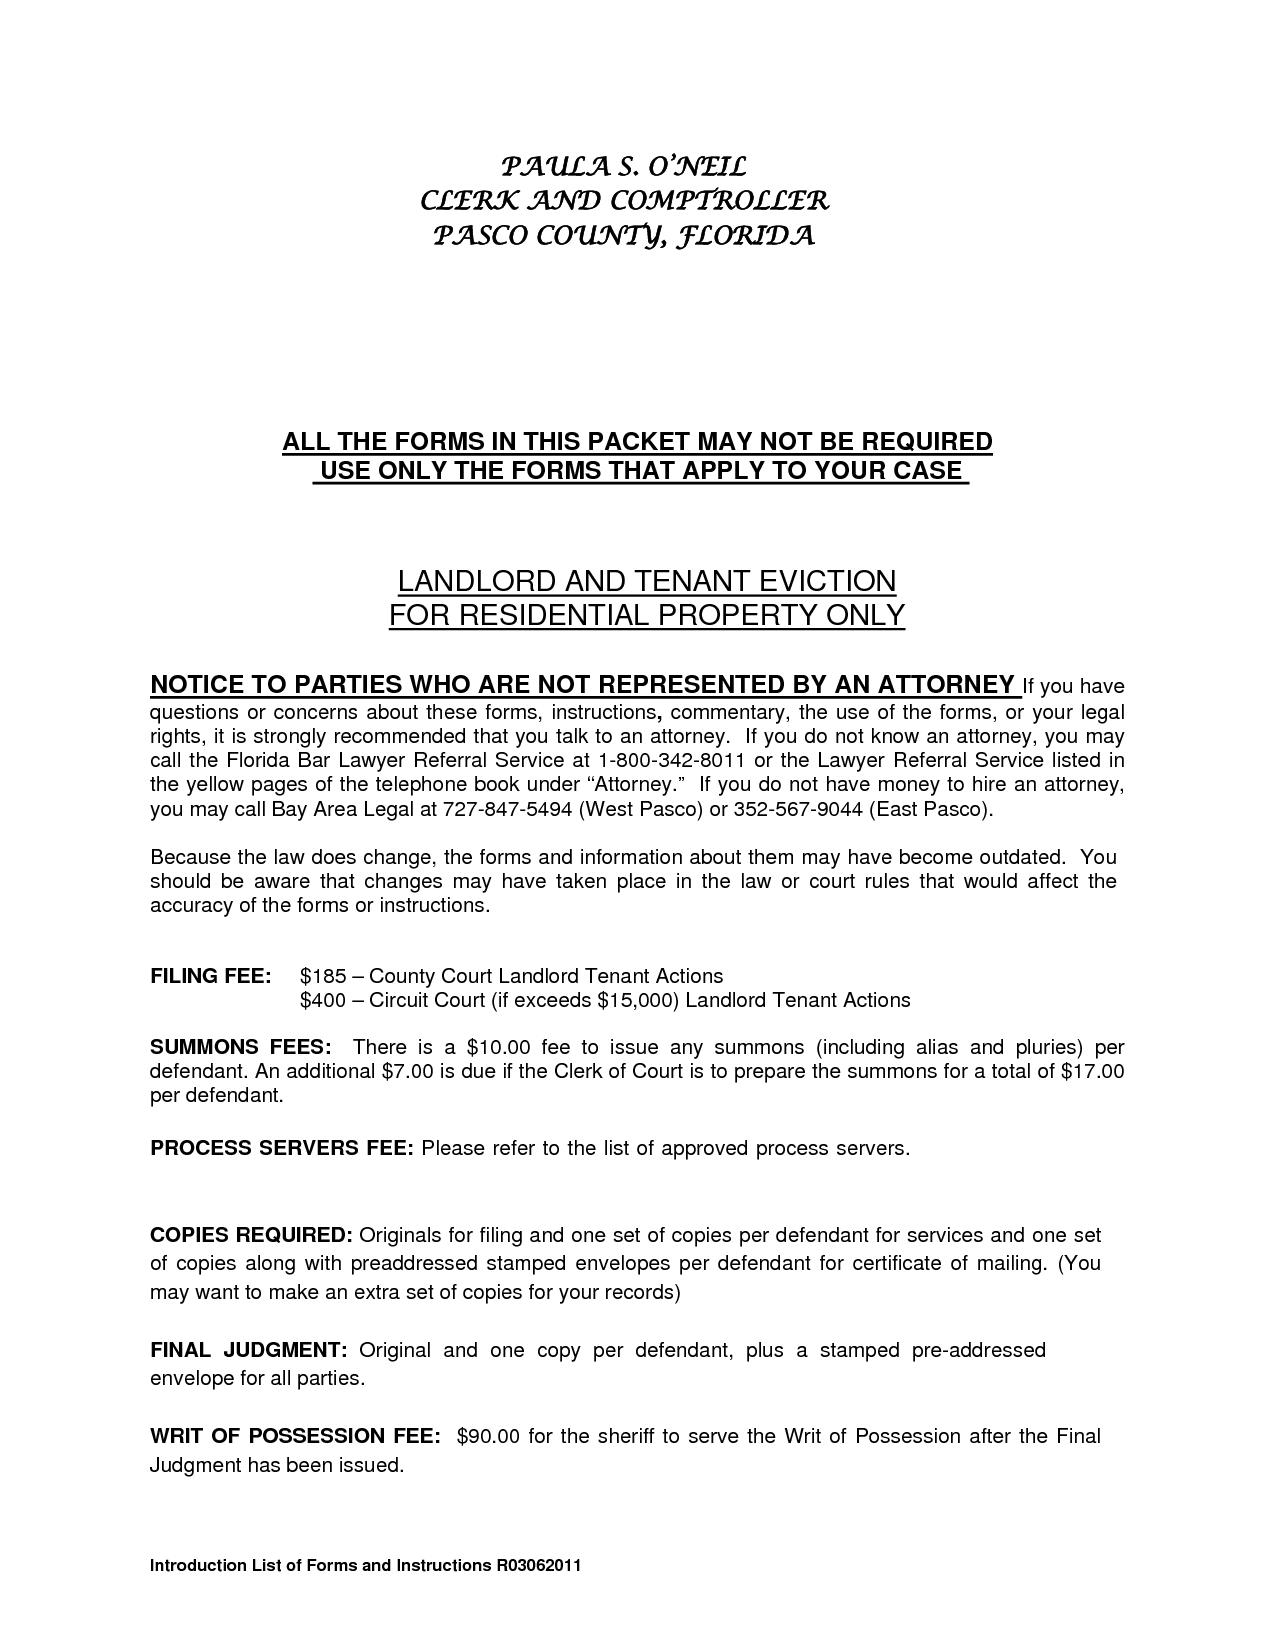 Roommate Eviction Letter Template - Residential Landlord Tenant Eviction Notice form by Ere